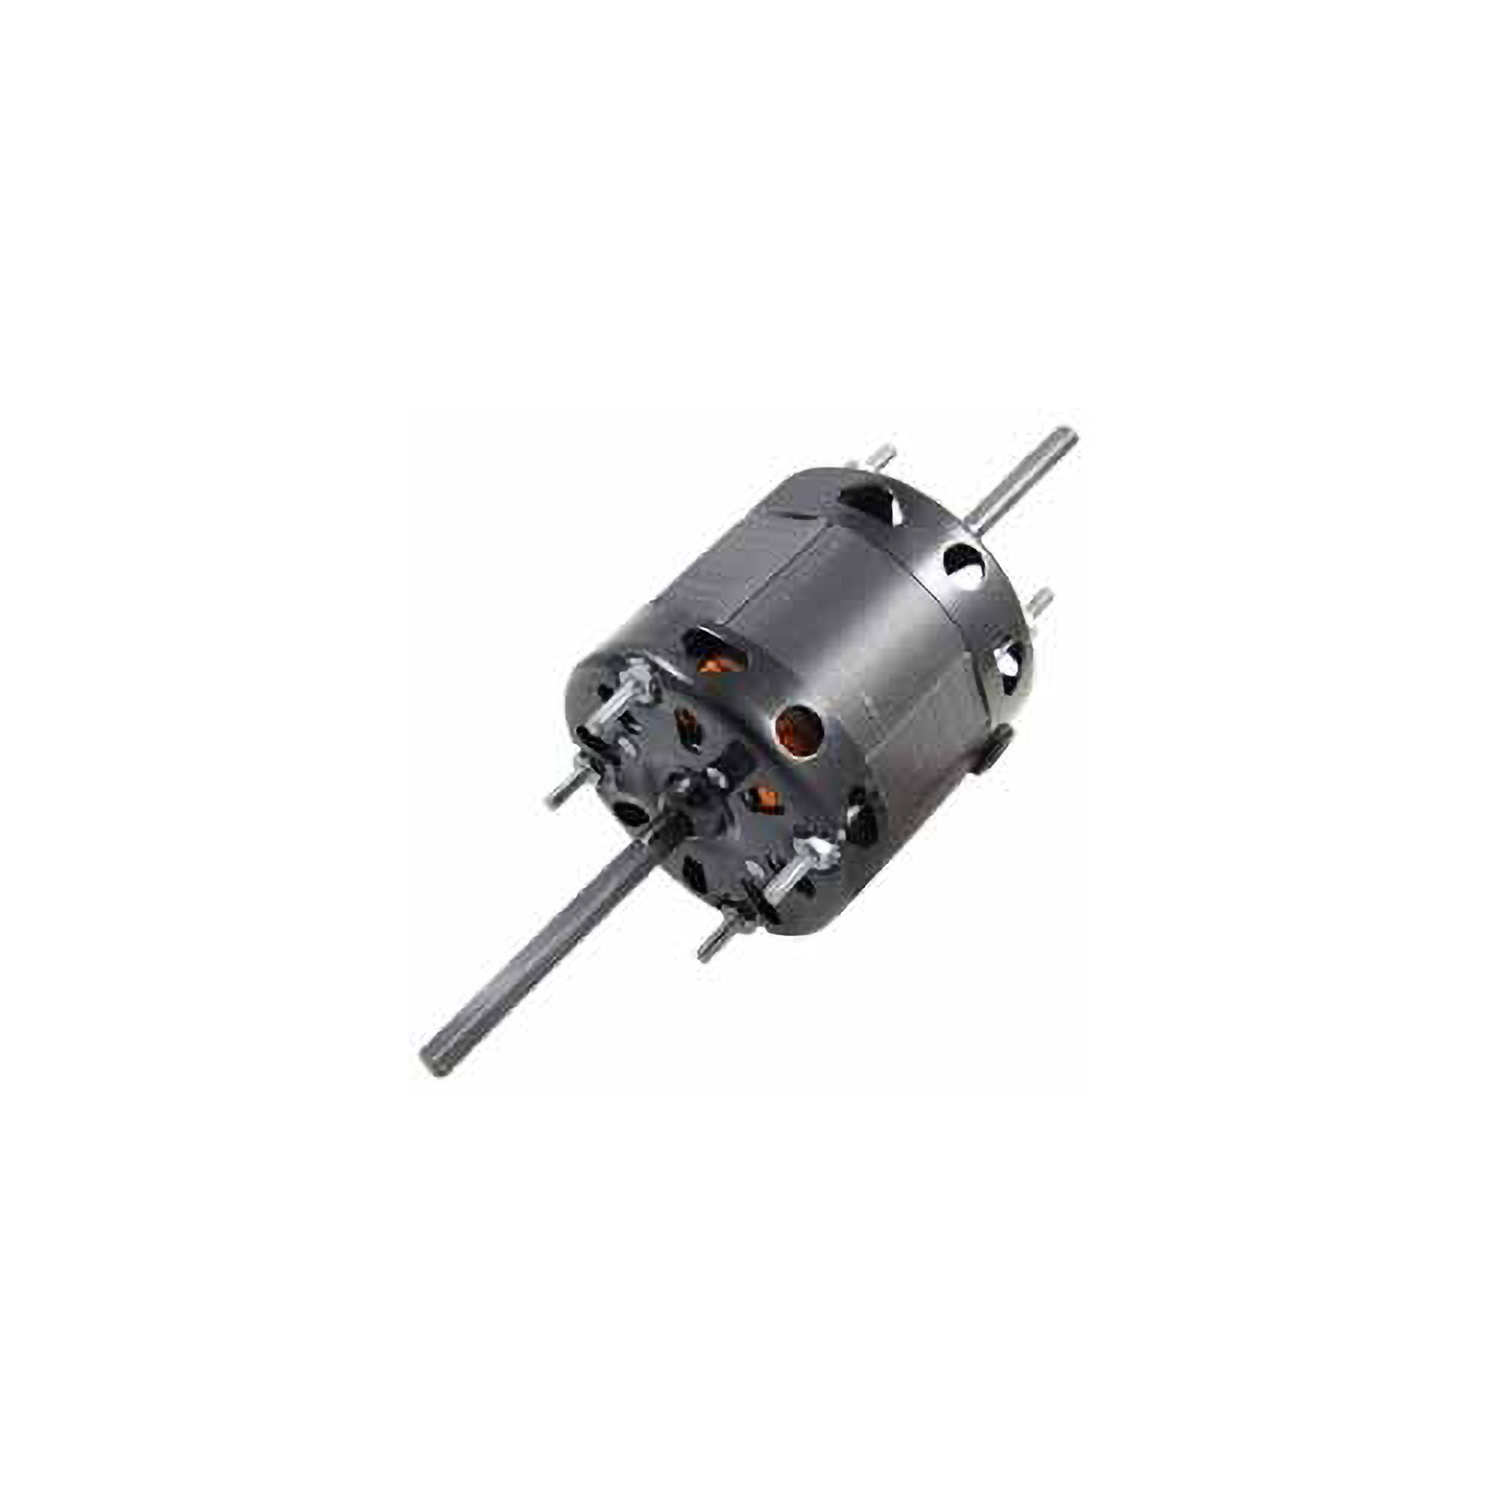 3.3 In. Diameter Motor, 1/40 HP, 115 Volts, 1500 RPM